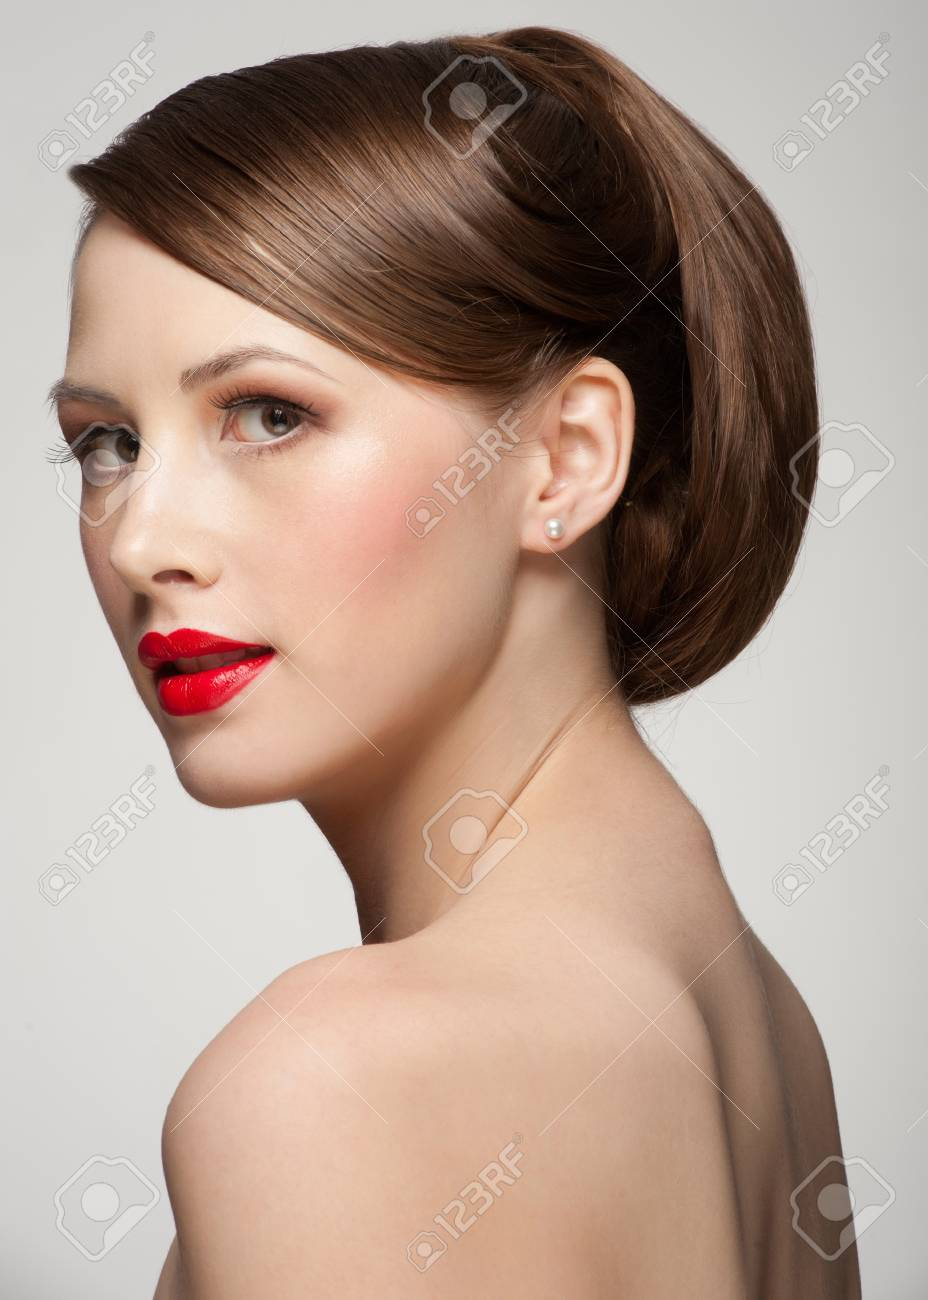 Portrait of attractive young woman with beautiful make-up and hairstyle Stock Photo - 15442451